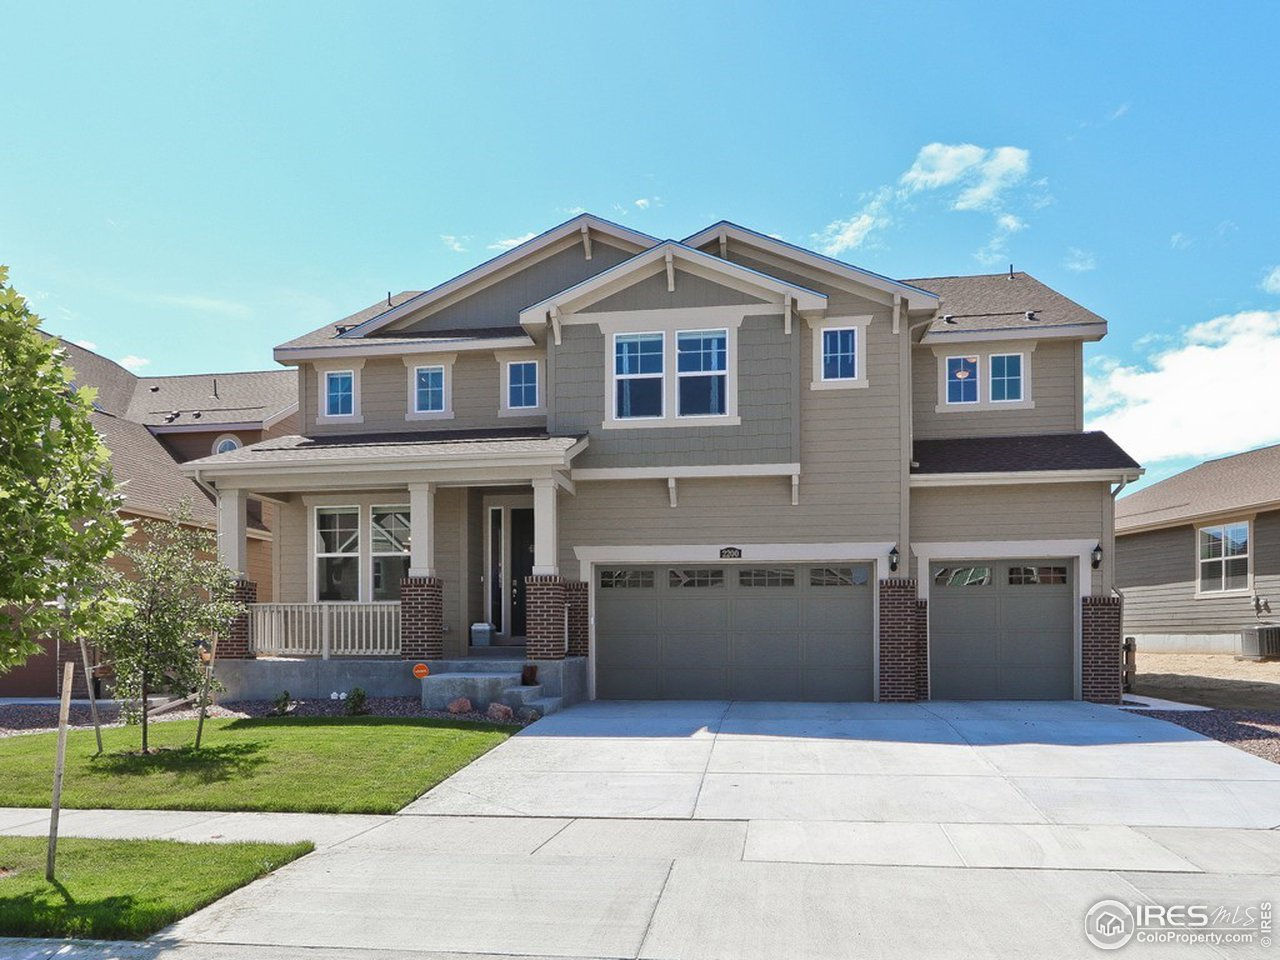 2200 Tyrrhenian Cir, Longmont CO 80504